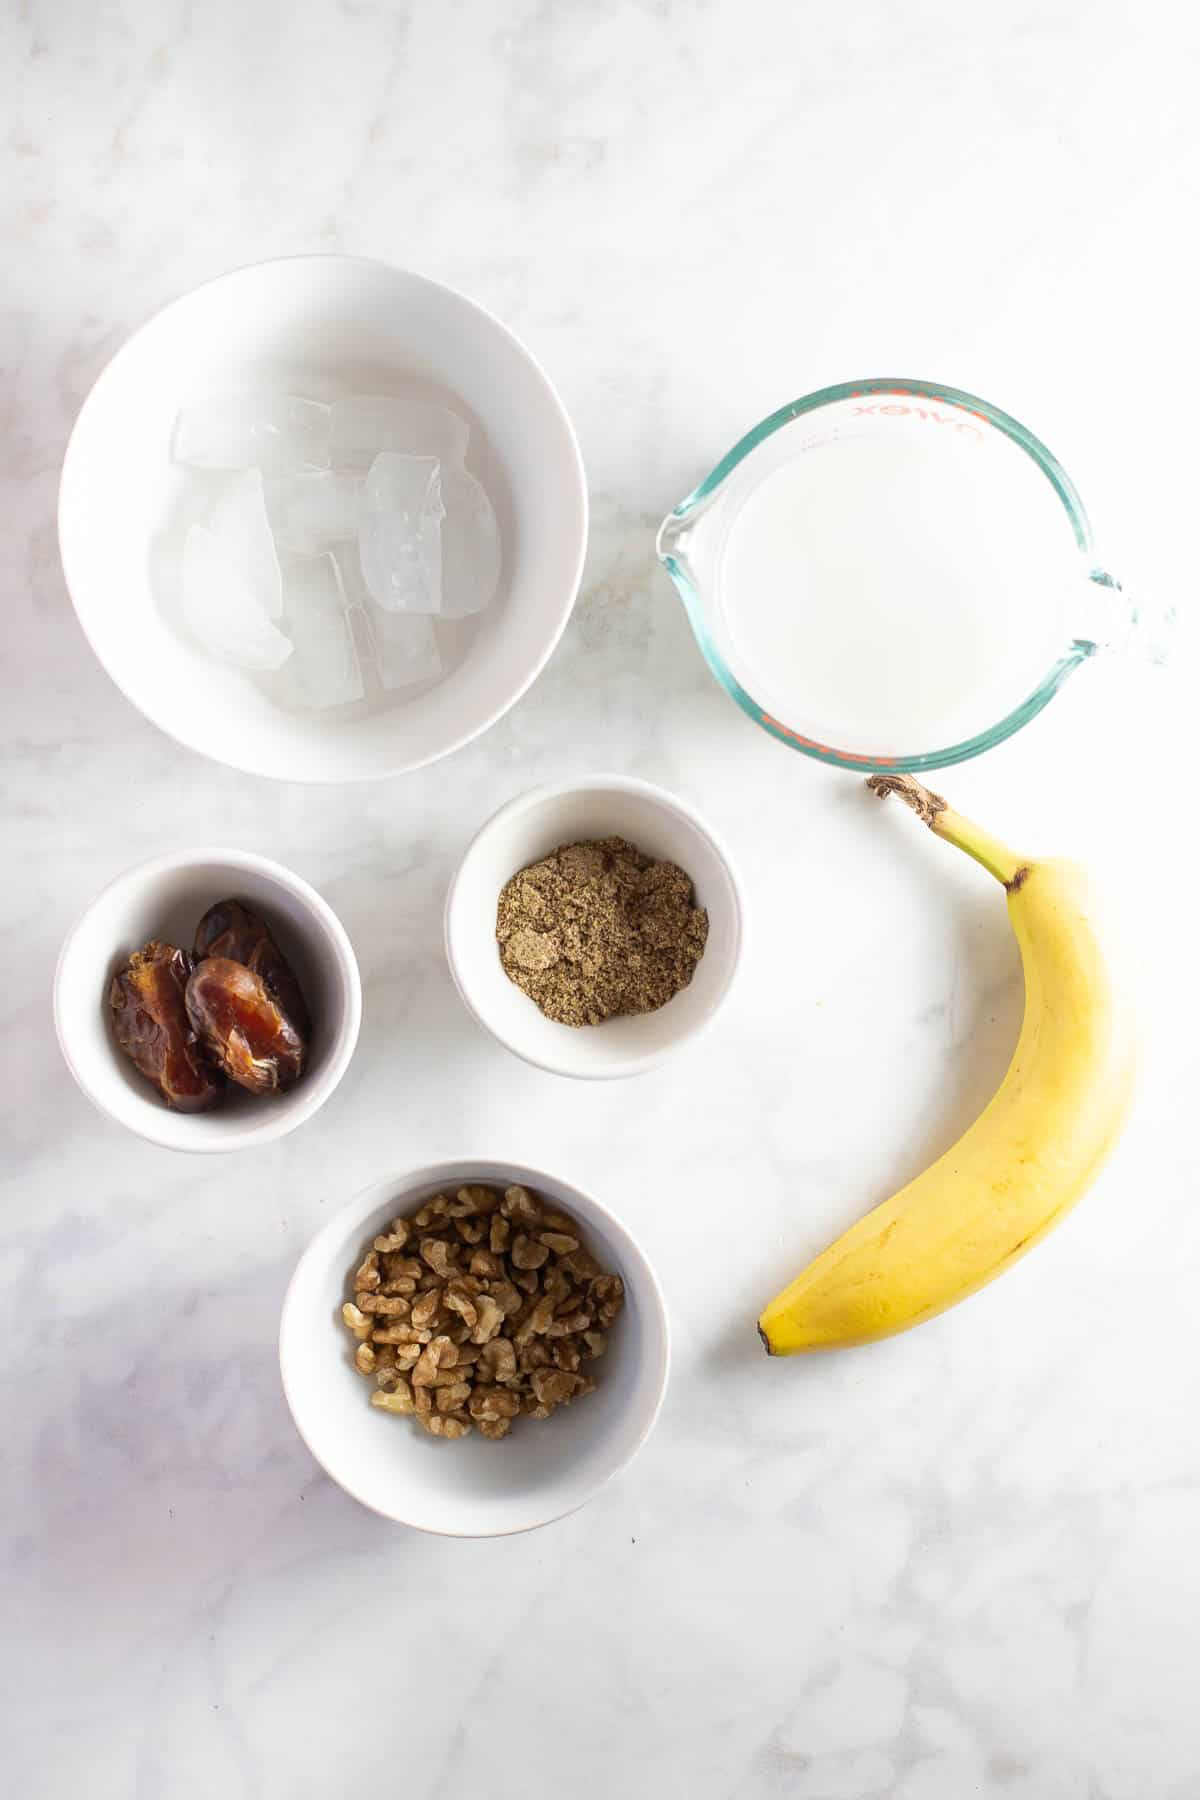 ingredients in white prep bowls to make a banana smoothie recipe